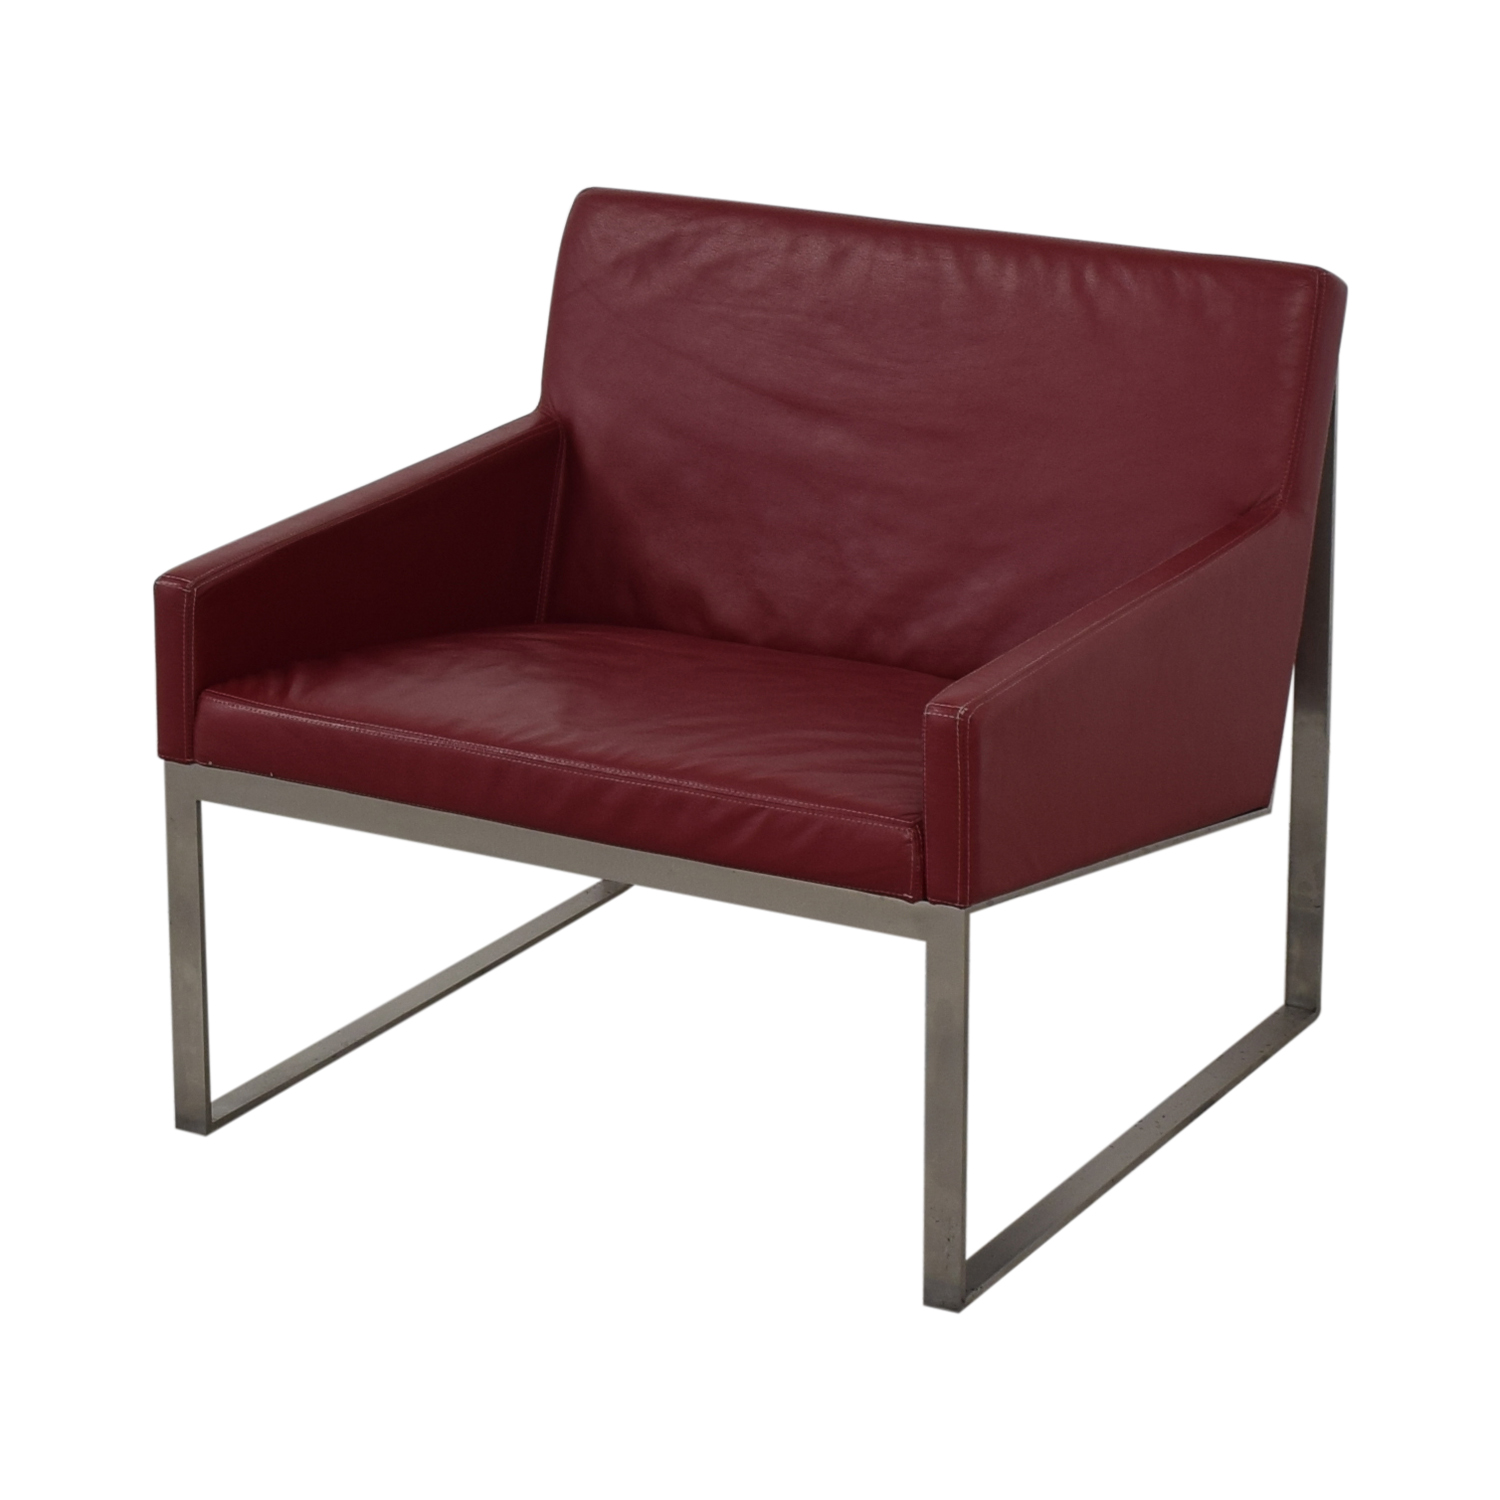 Bernhardt B.3 Lounge Chair / Chairs